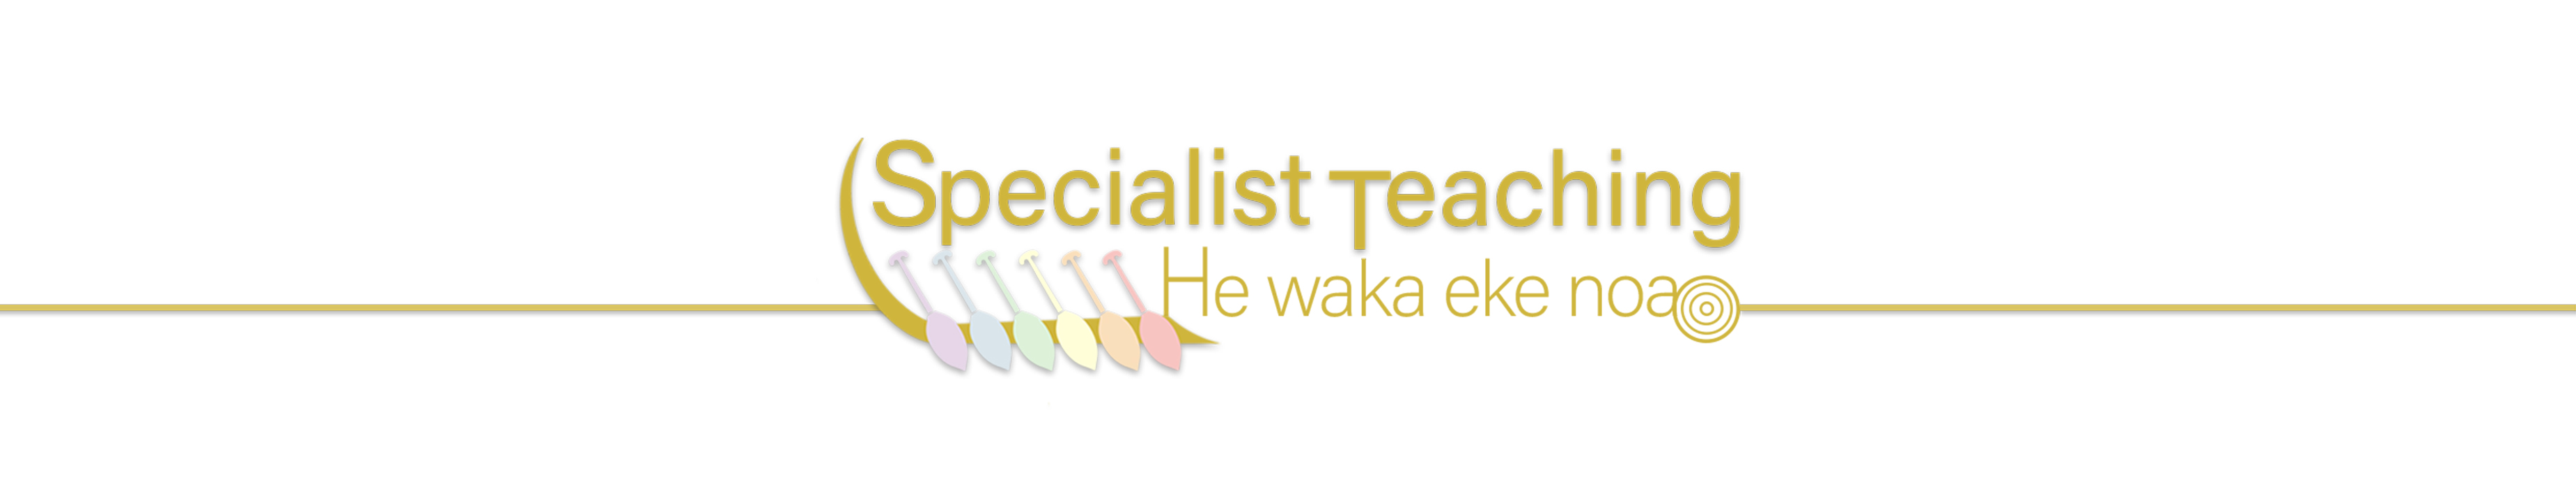 Specialistic teaching